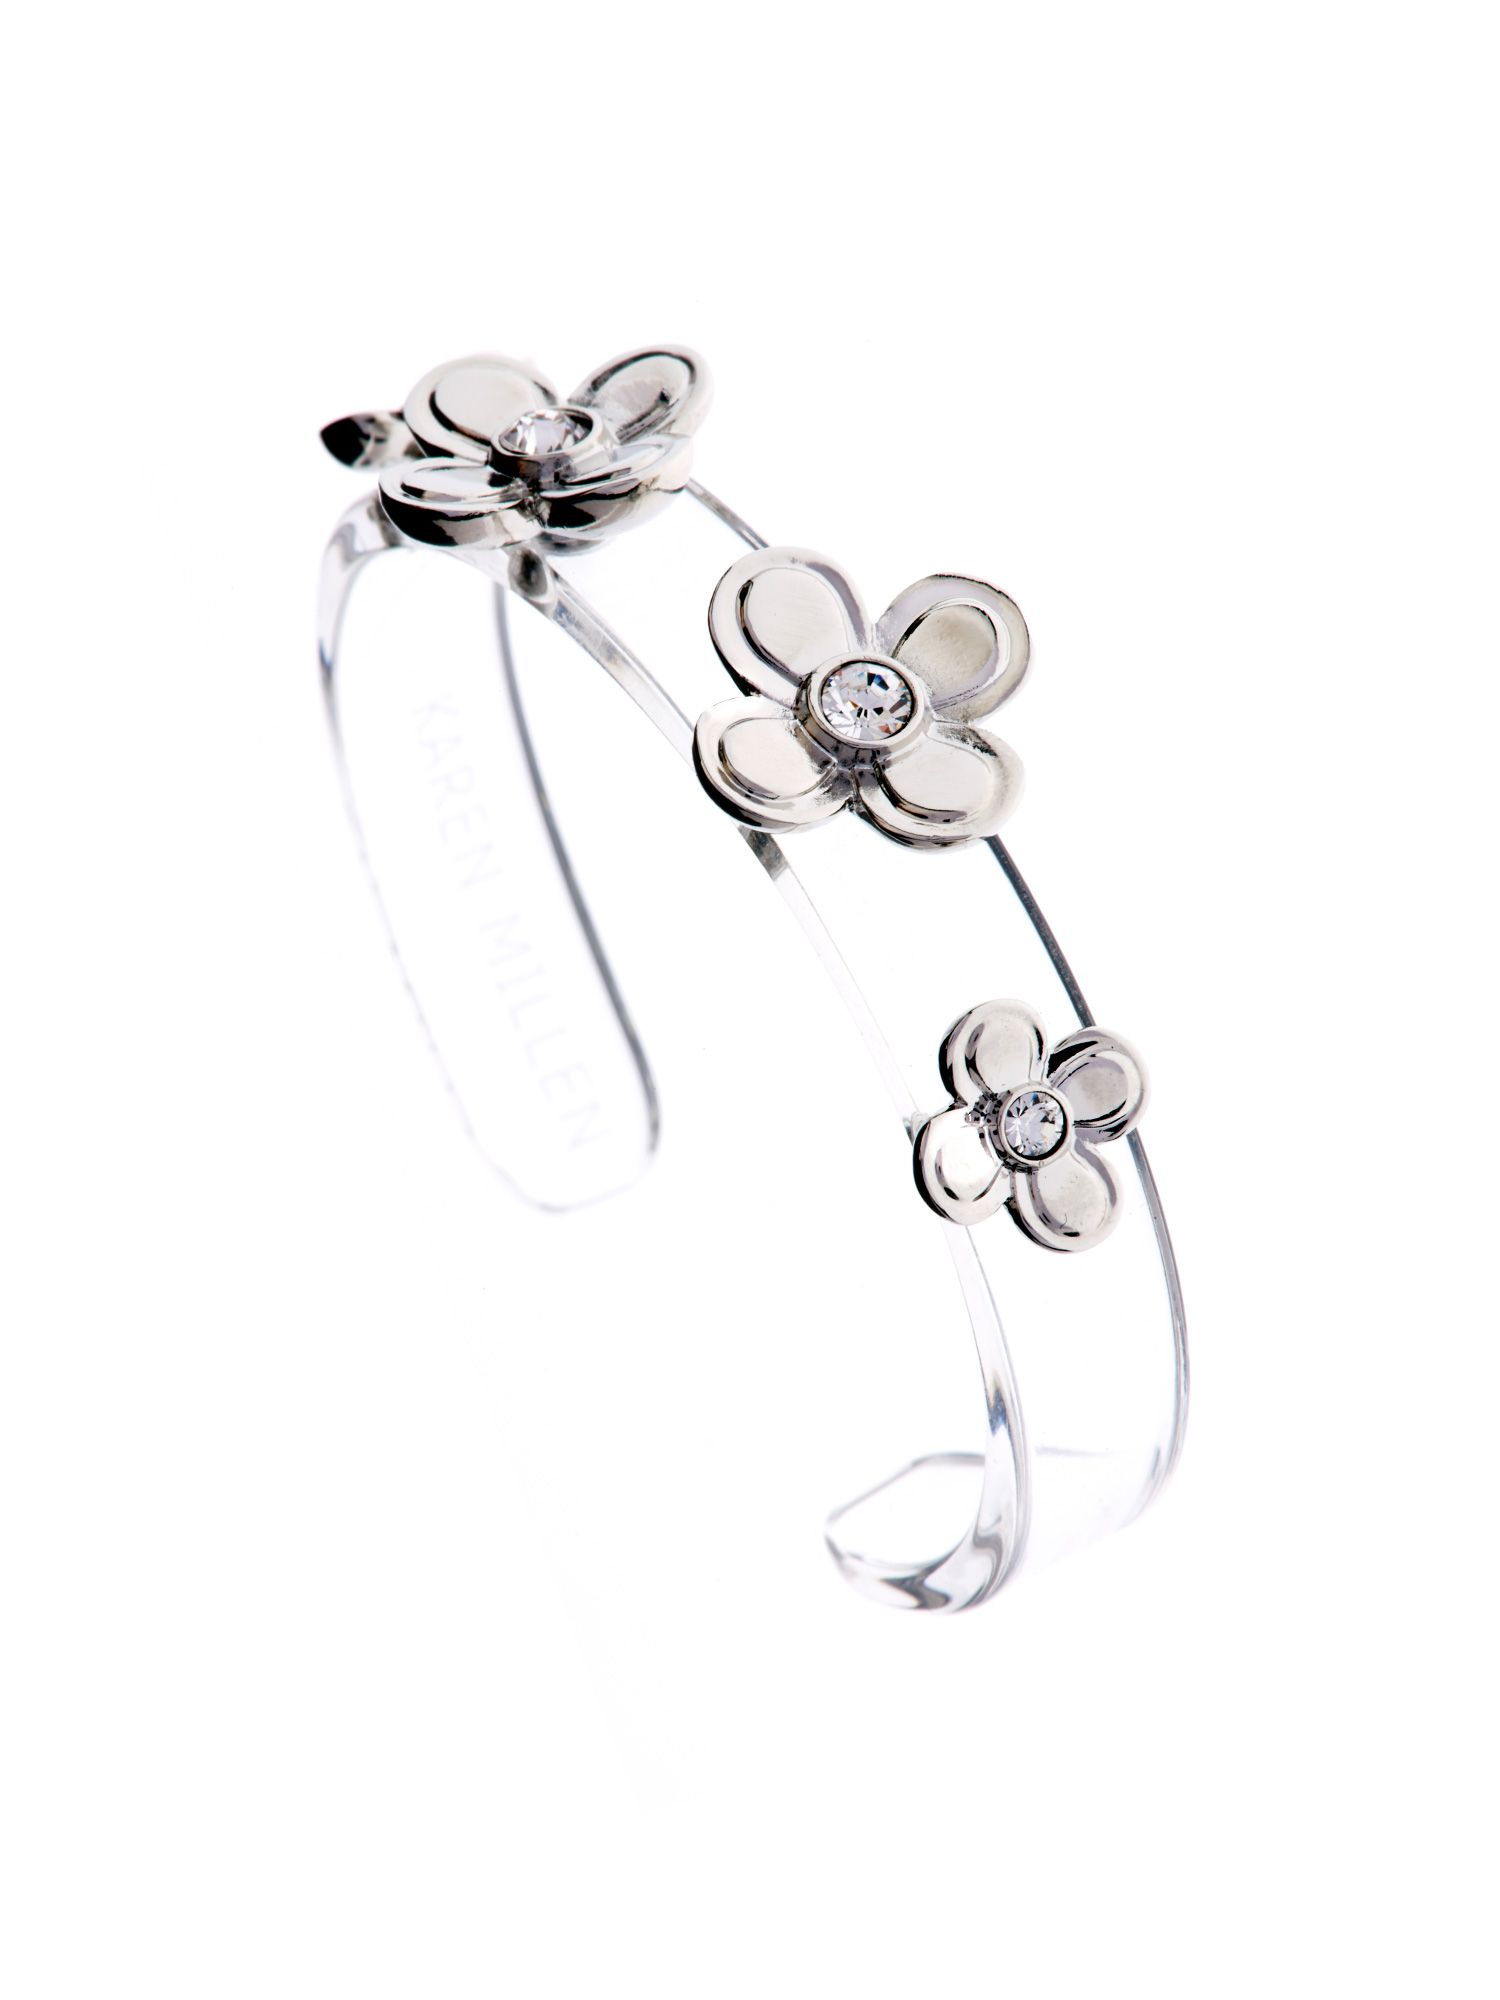 Narrow acrylic flower cuff